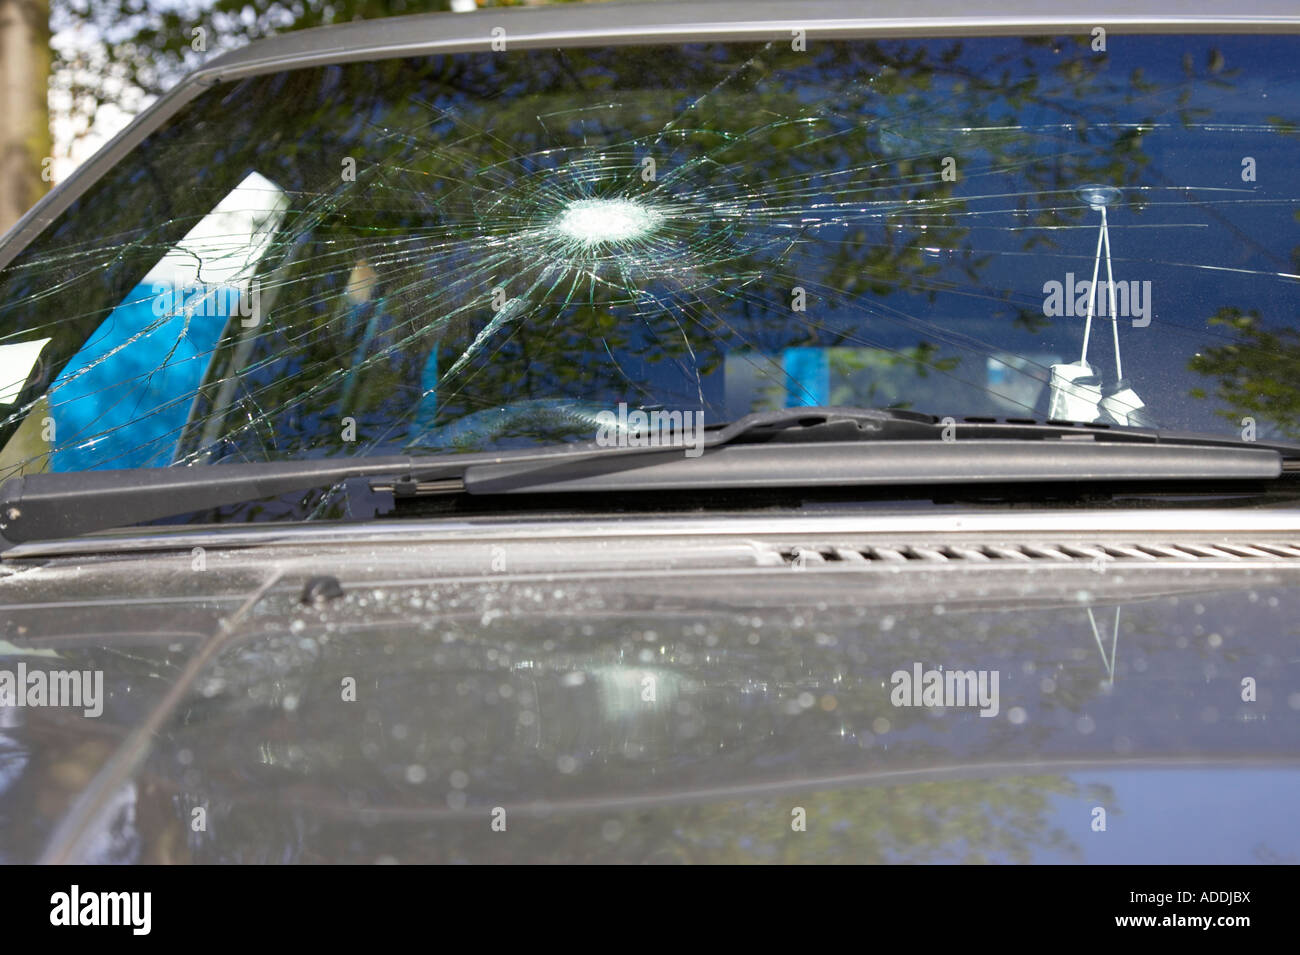 smashed cracked car windscreen caused by vandals with glass fragments on the bonnet - Stock Image